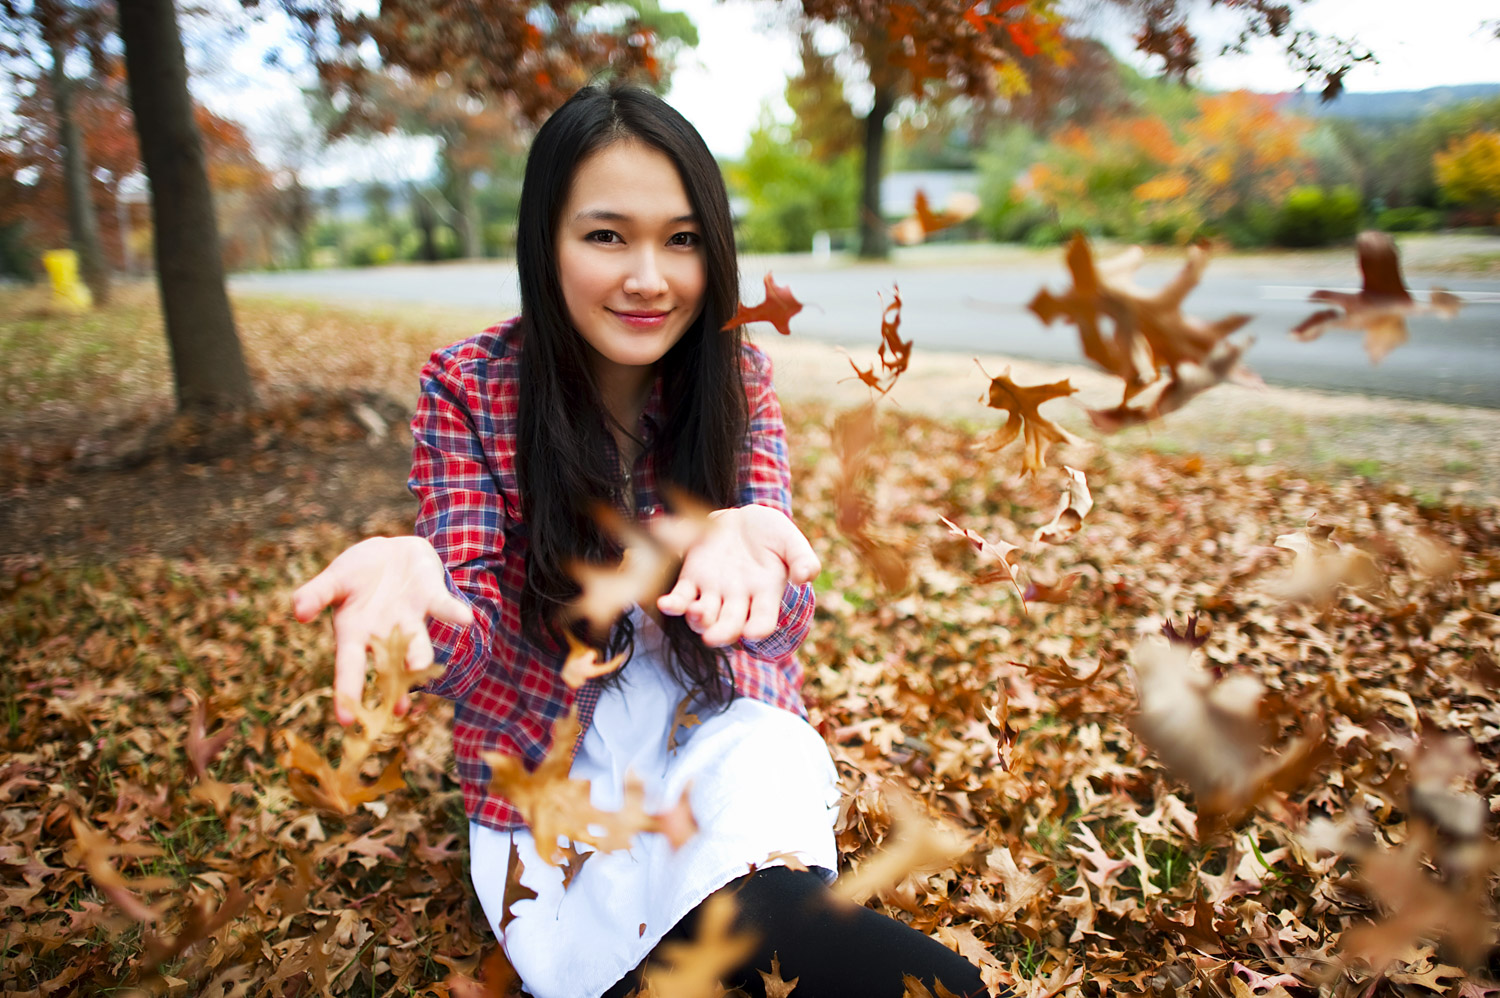 Sun (Visitor) - The red autumn leaves symbolise joy and good fortune